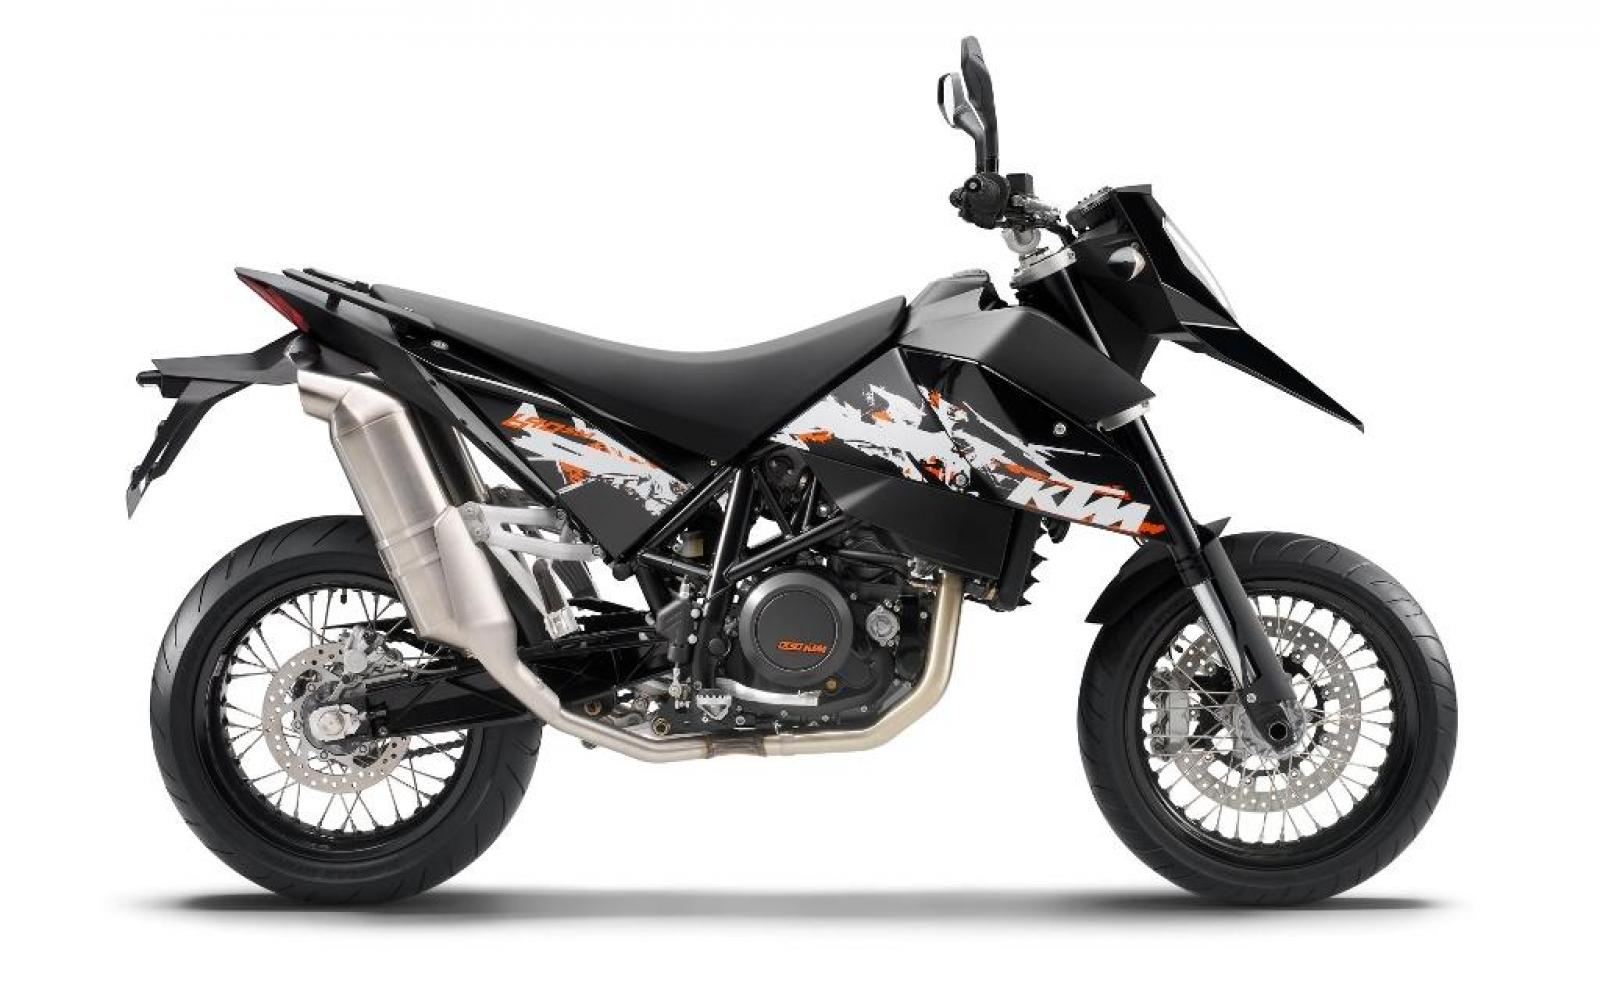 KTM 690 Supermoto Limited Edition 2010 images #155307